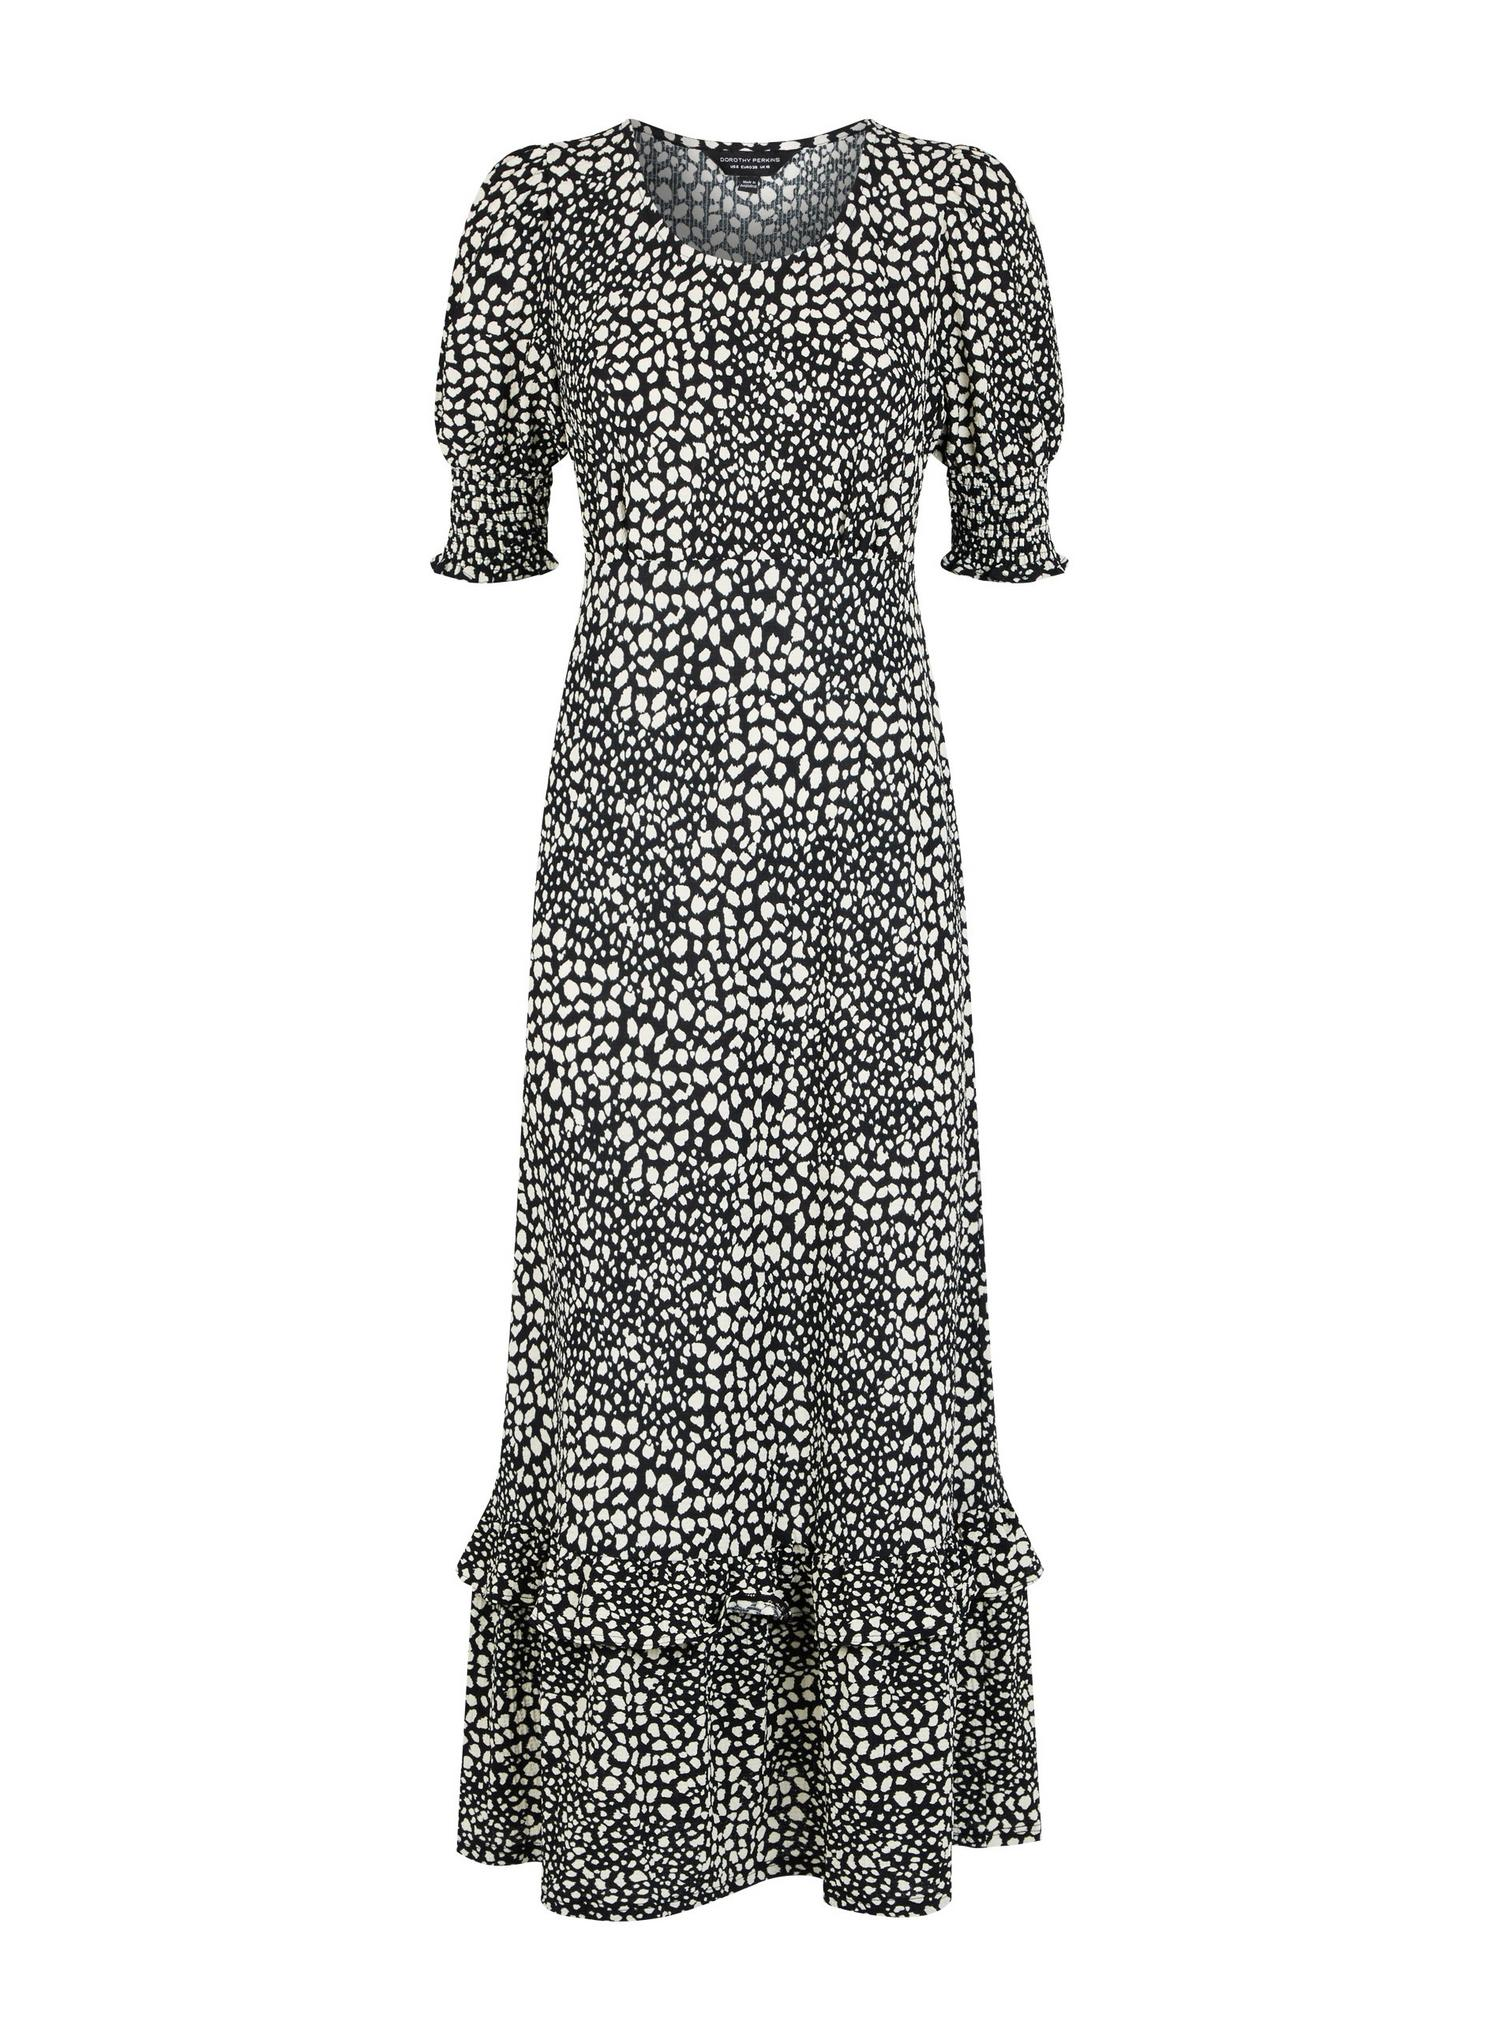 123 Neutral Leopard Print Midi Wrap Dress image number 4